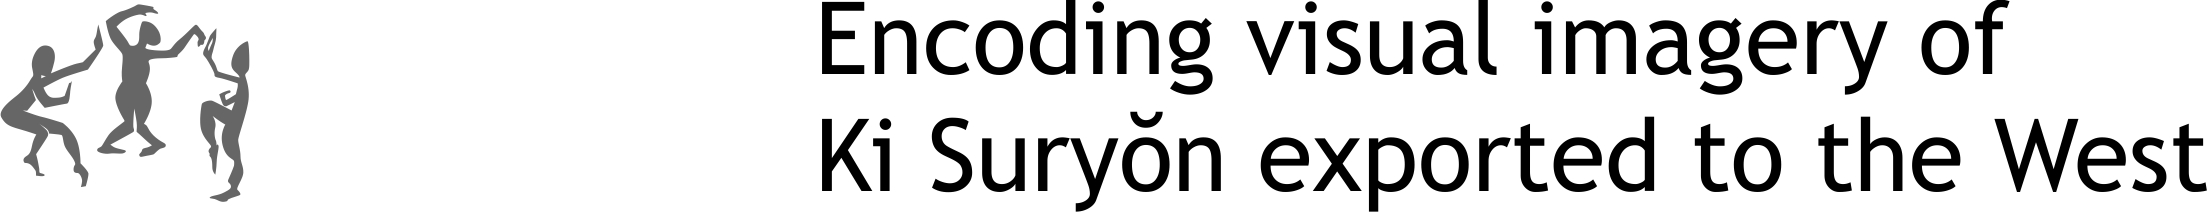 Encoding visual imagery of Ki Suryŏn exported to the West